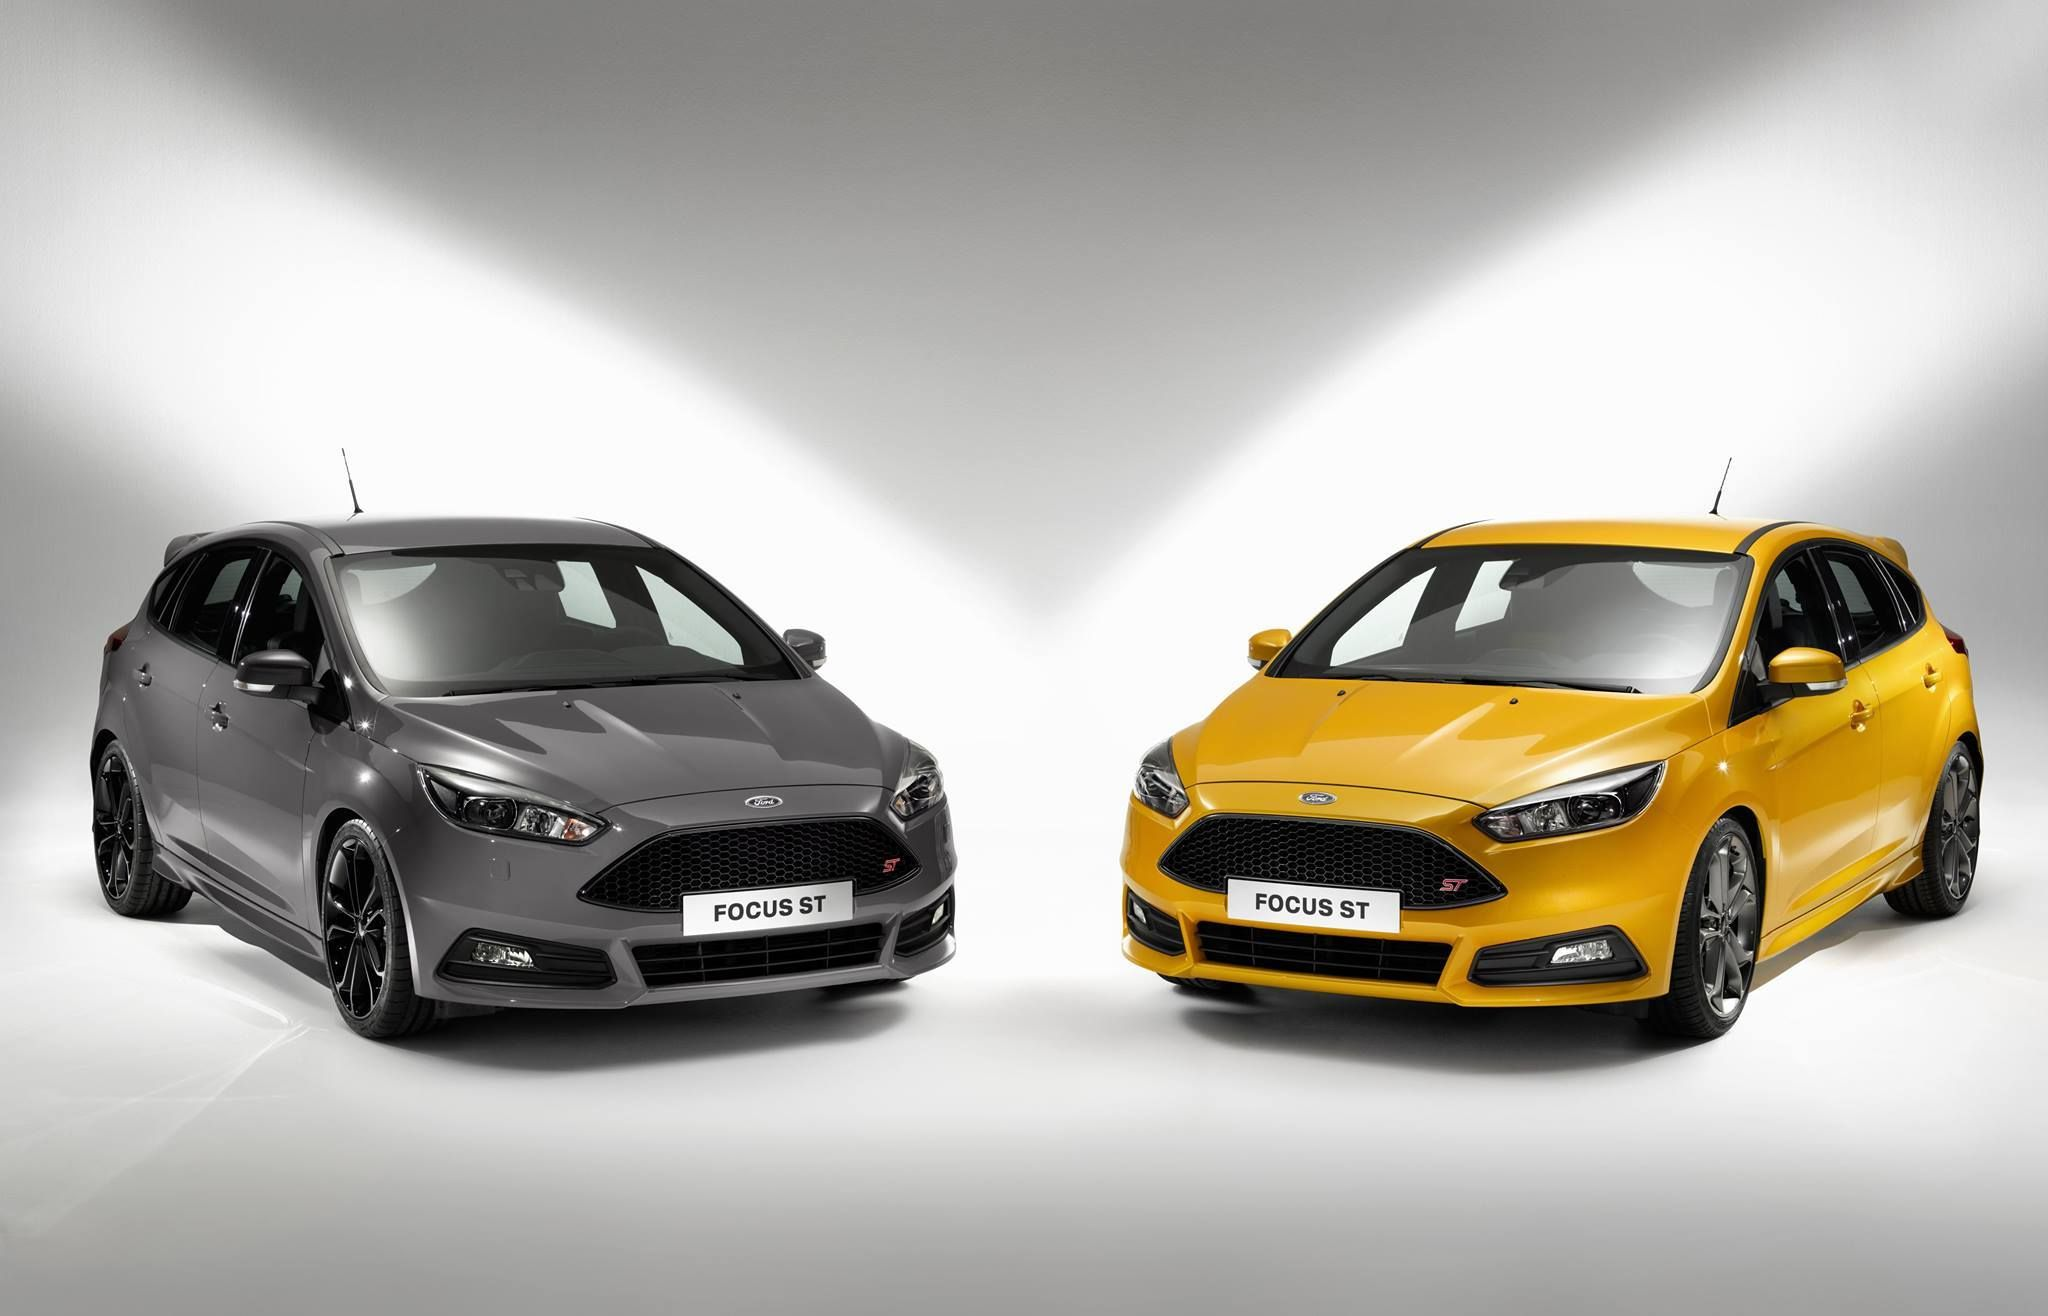 The All New Ford Focus St 2015 Model Www Swanson Ford Co Uk Ford Focus Ford Diesel Ford Motorsport